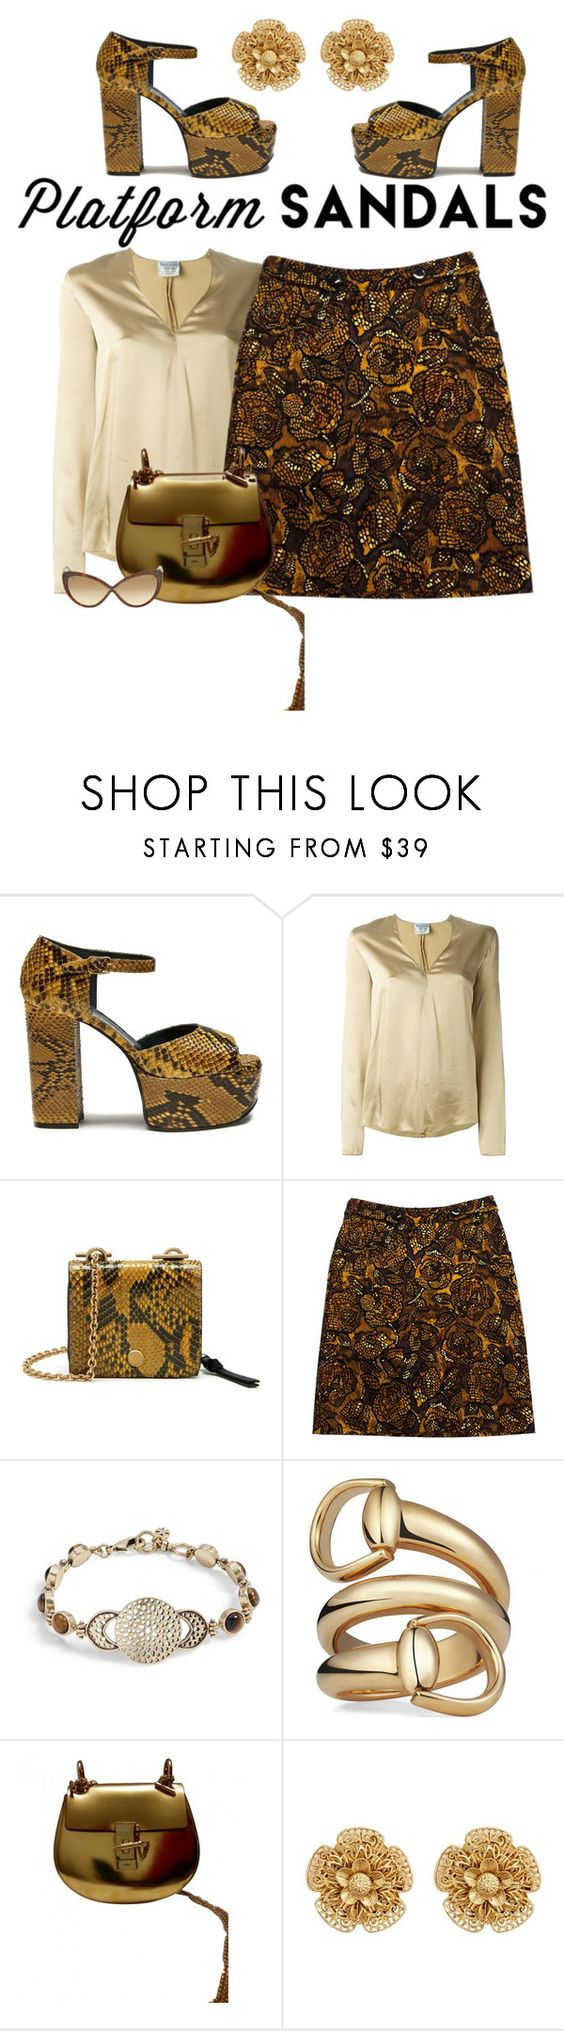 """Untitled #5086"" by lovetodrinktea ❤ liked on Polyvore featuring Mulberry, Forte Forte, Etcetera, Lucky Brand, Gucci, Miriam Haskell and Tom Ford"